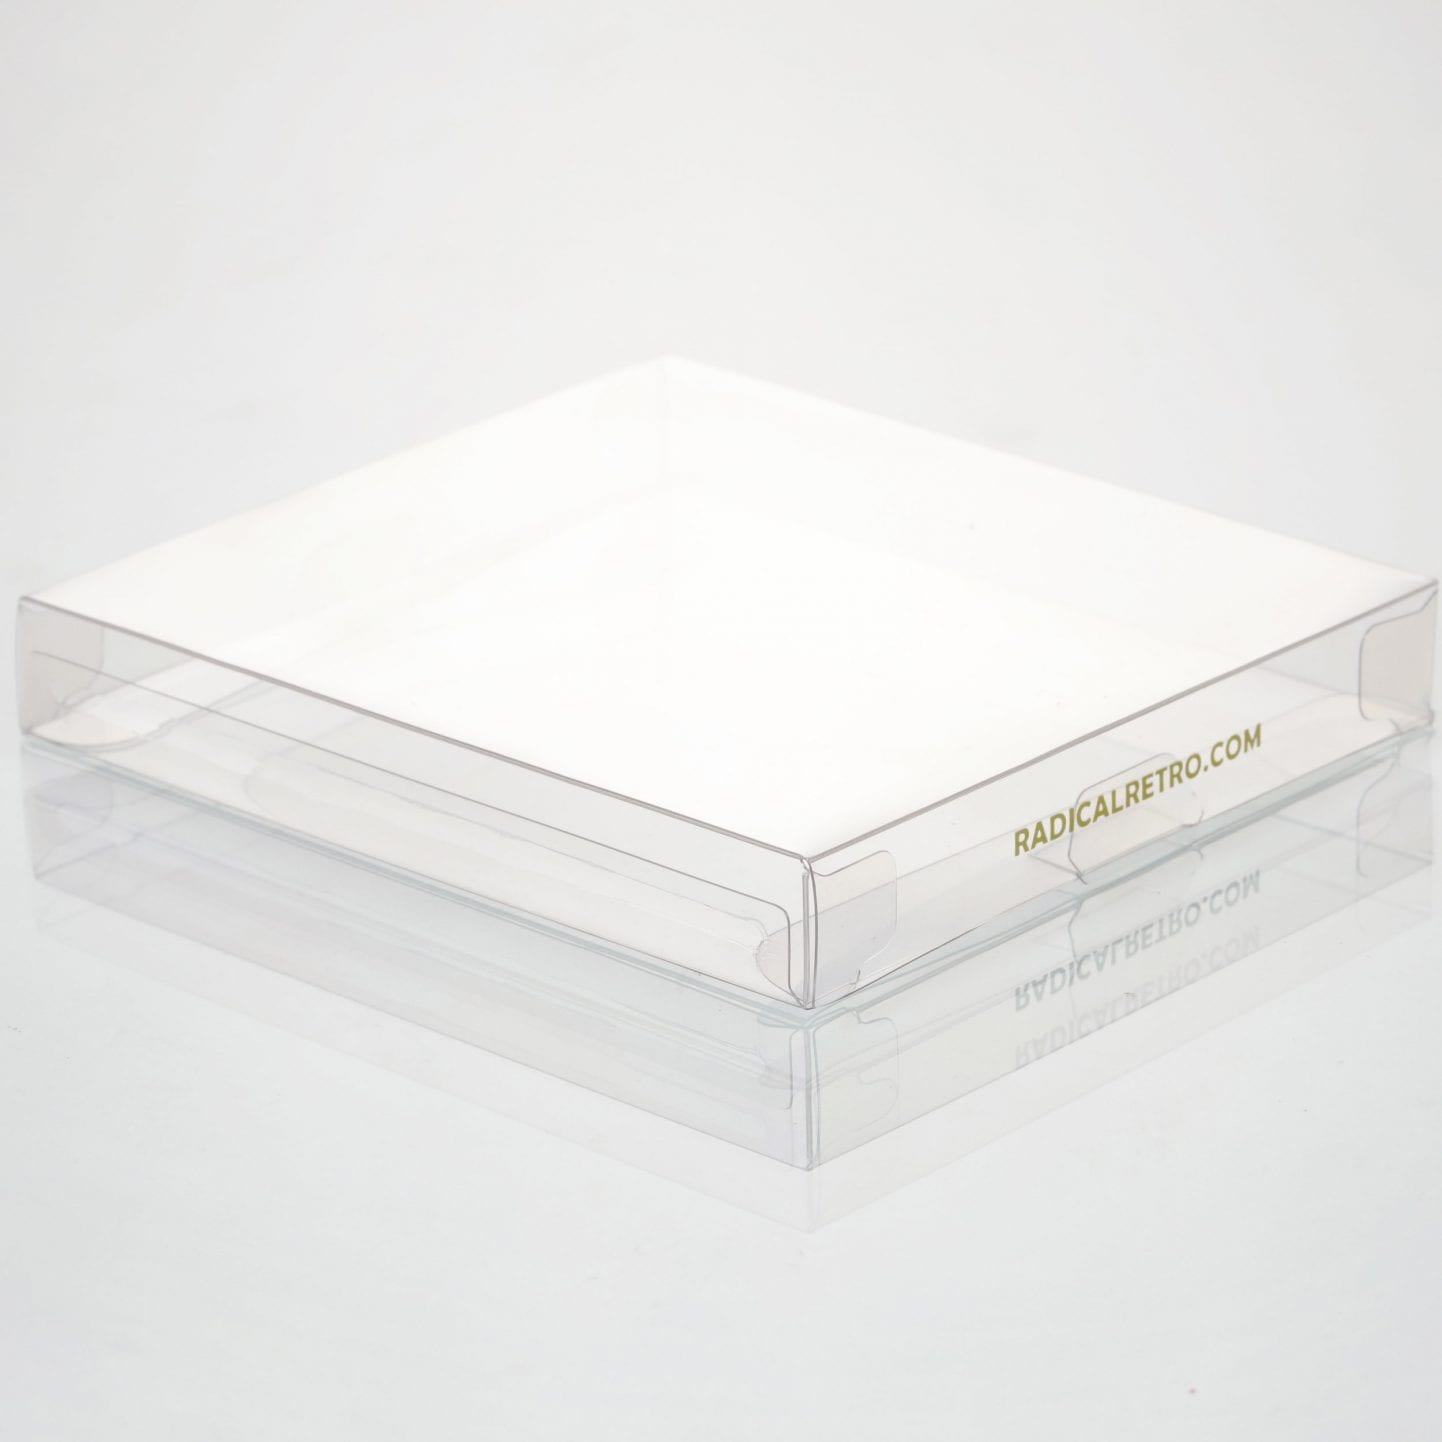 clear Plastic Boxes Wholesale